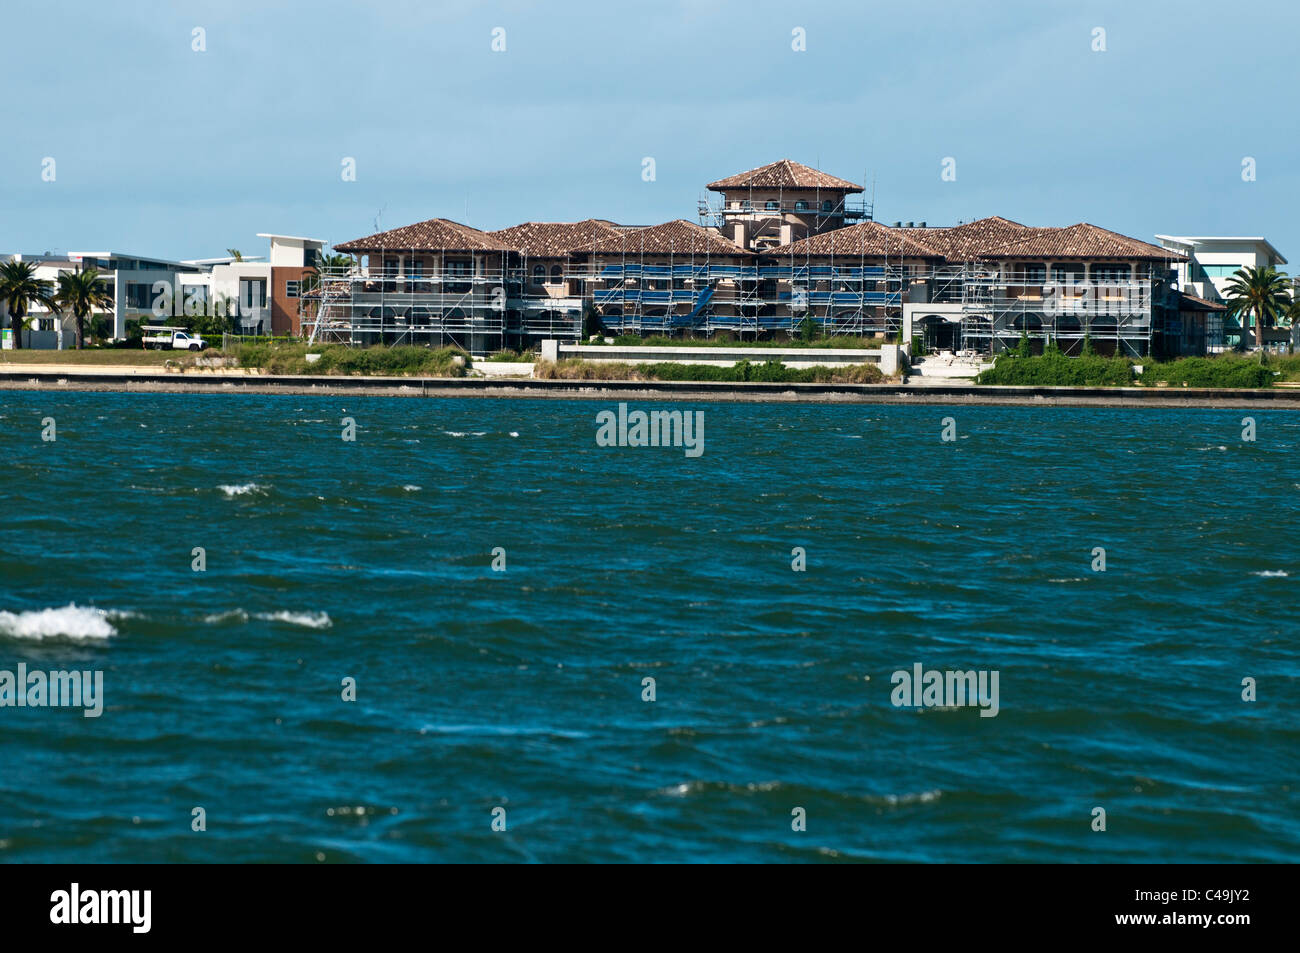 Rich Homes Stock Photos Amp Rich Homes Stock Images Alamy